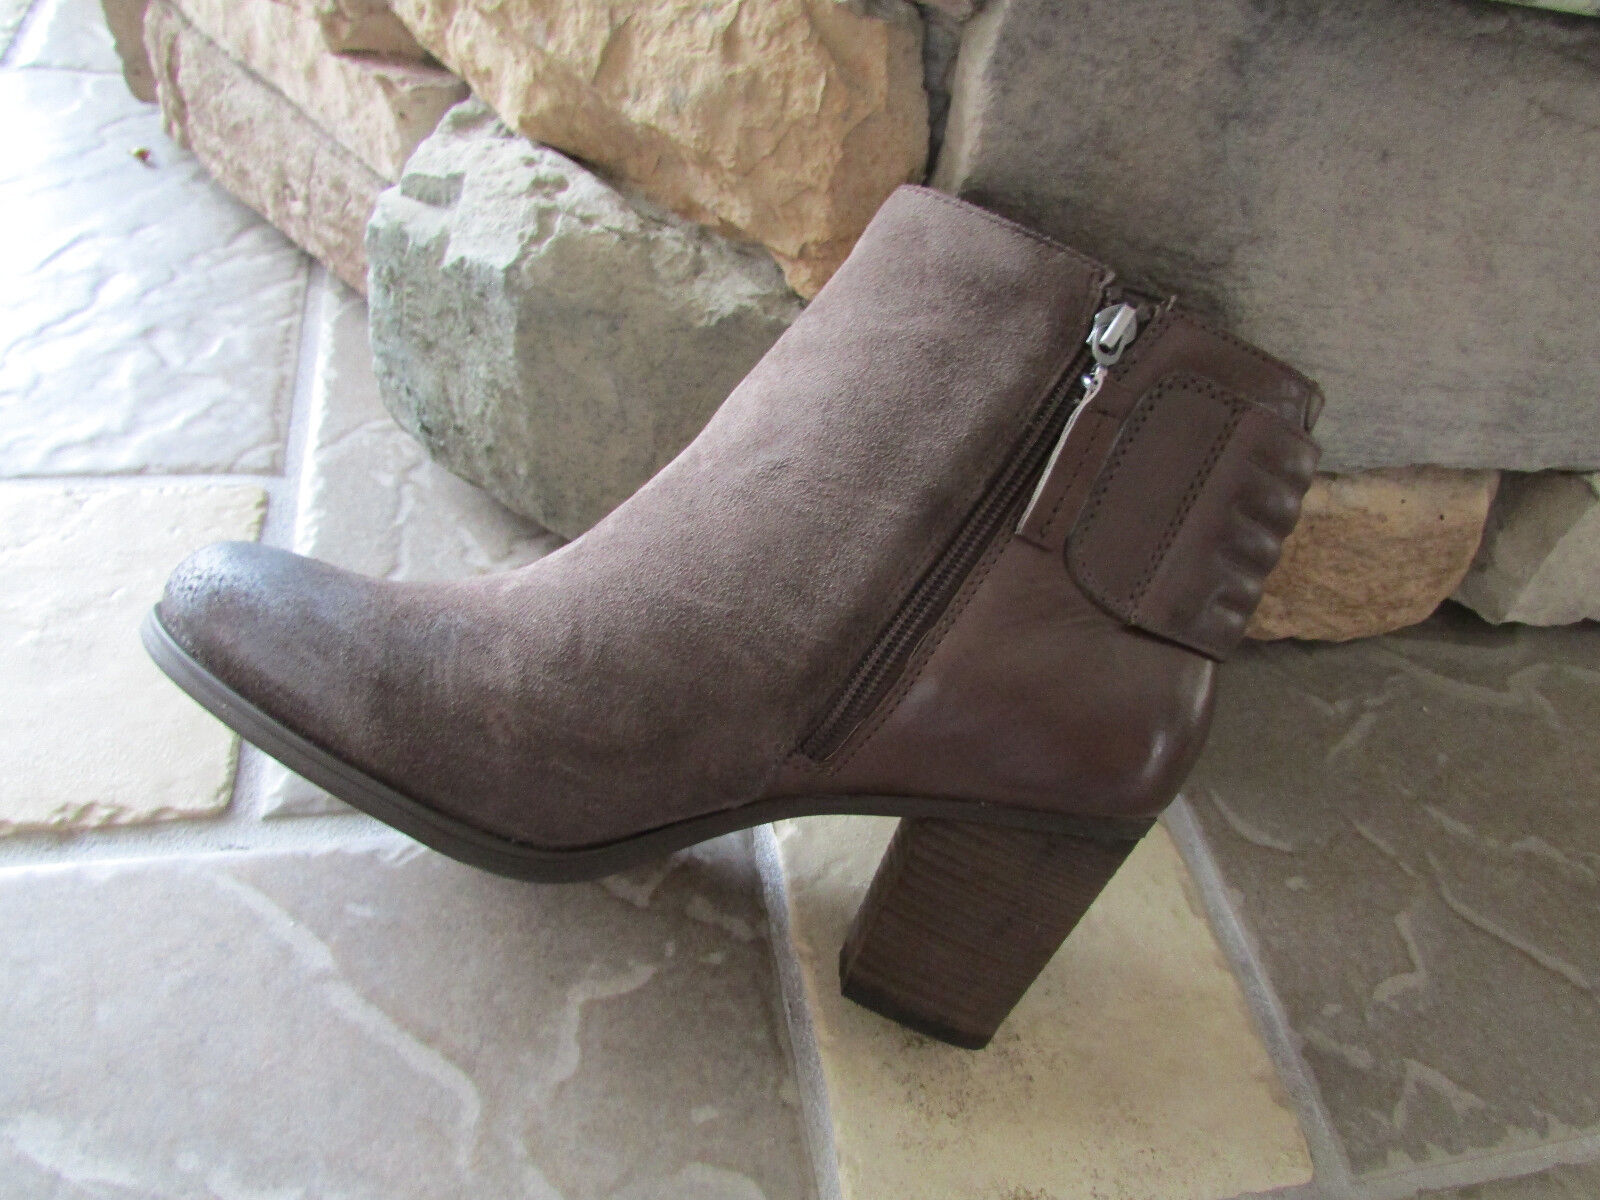 NEW CLARKS PALMA RYLIE TAUPE SUEDE LEATHER ANKLE BOOTS WOMENS 10 BOOTIES 10635